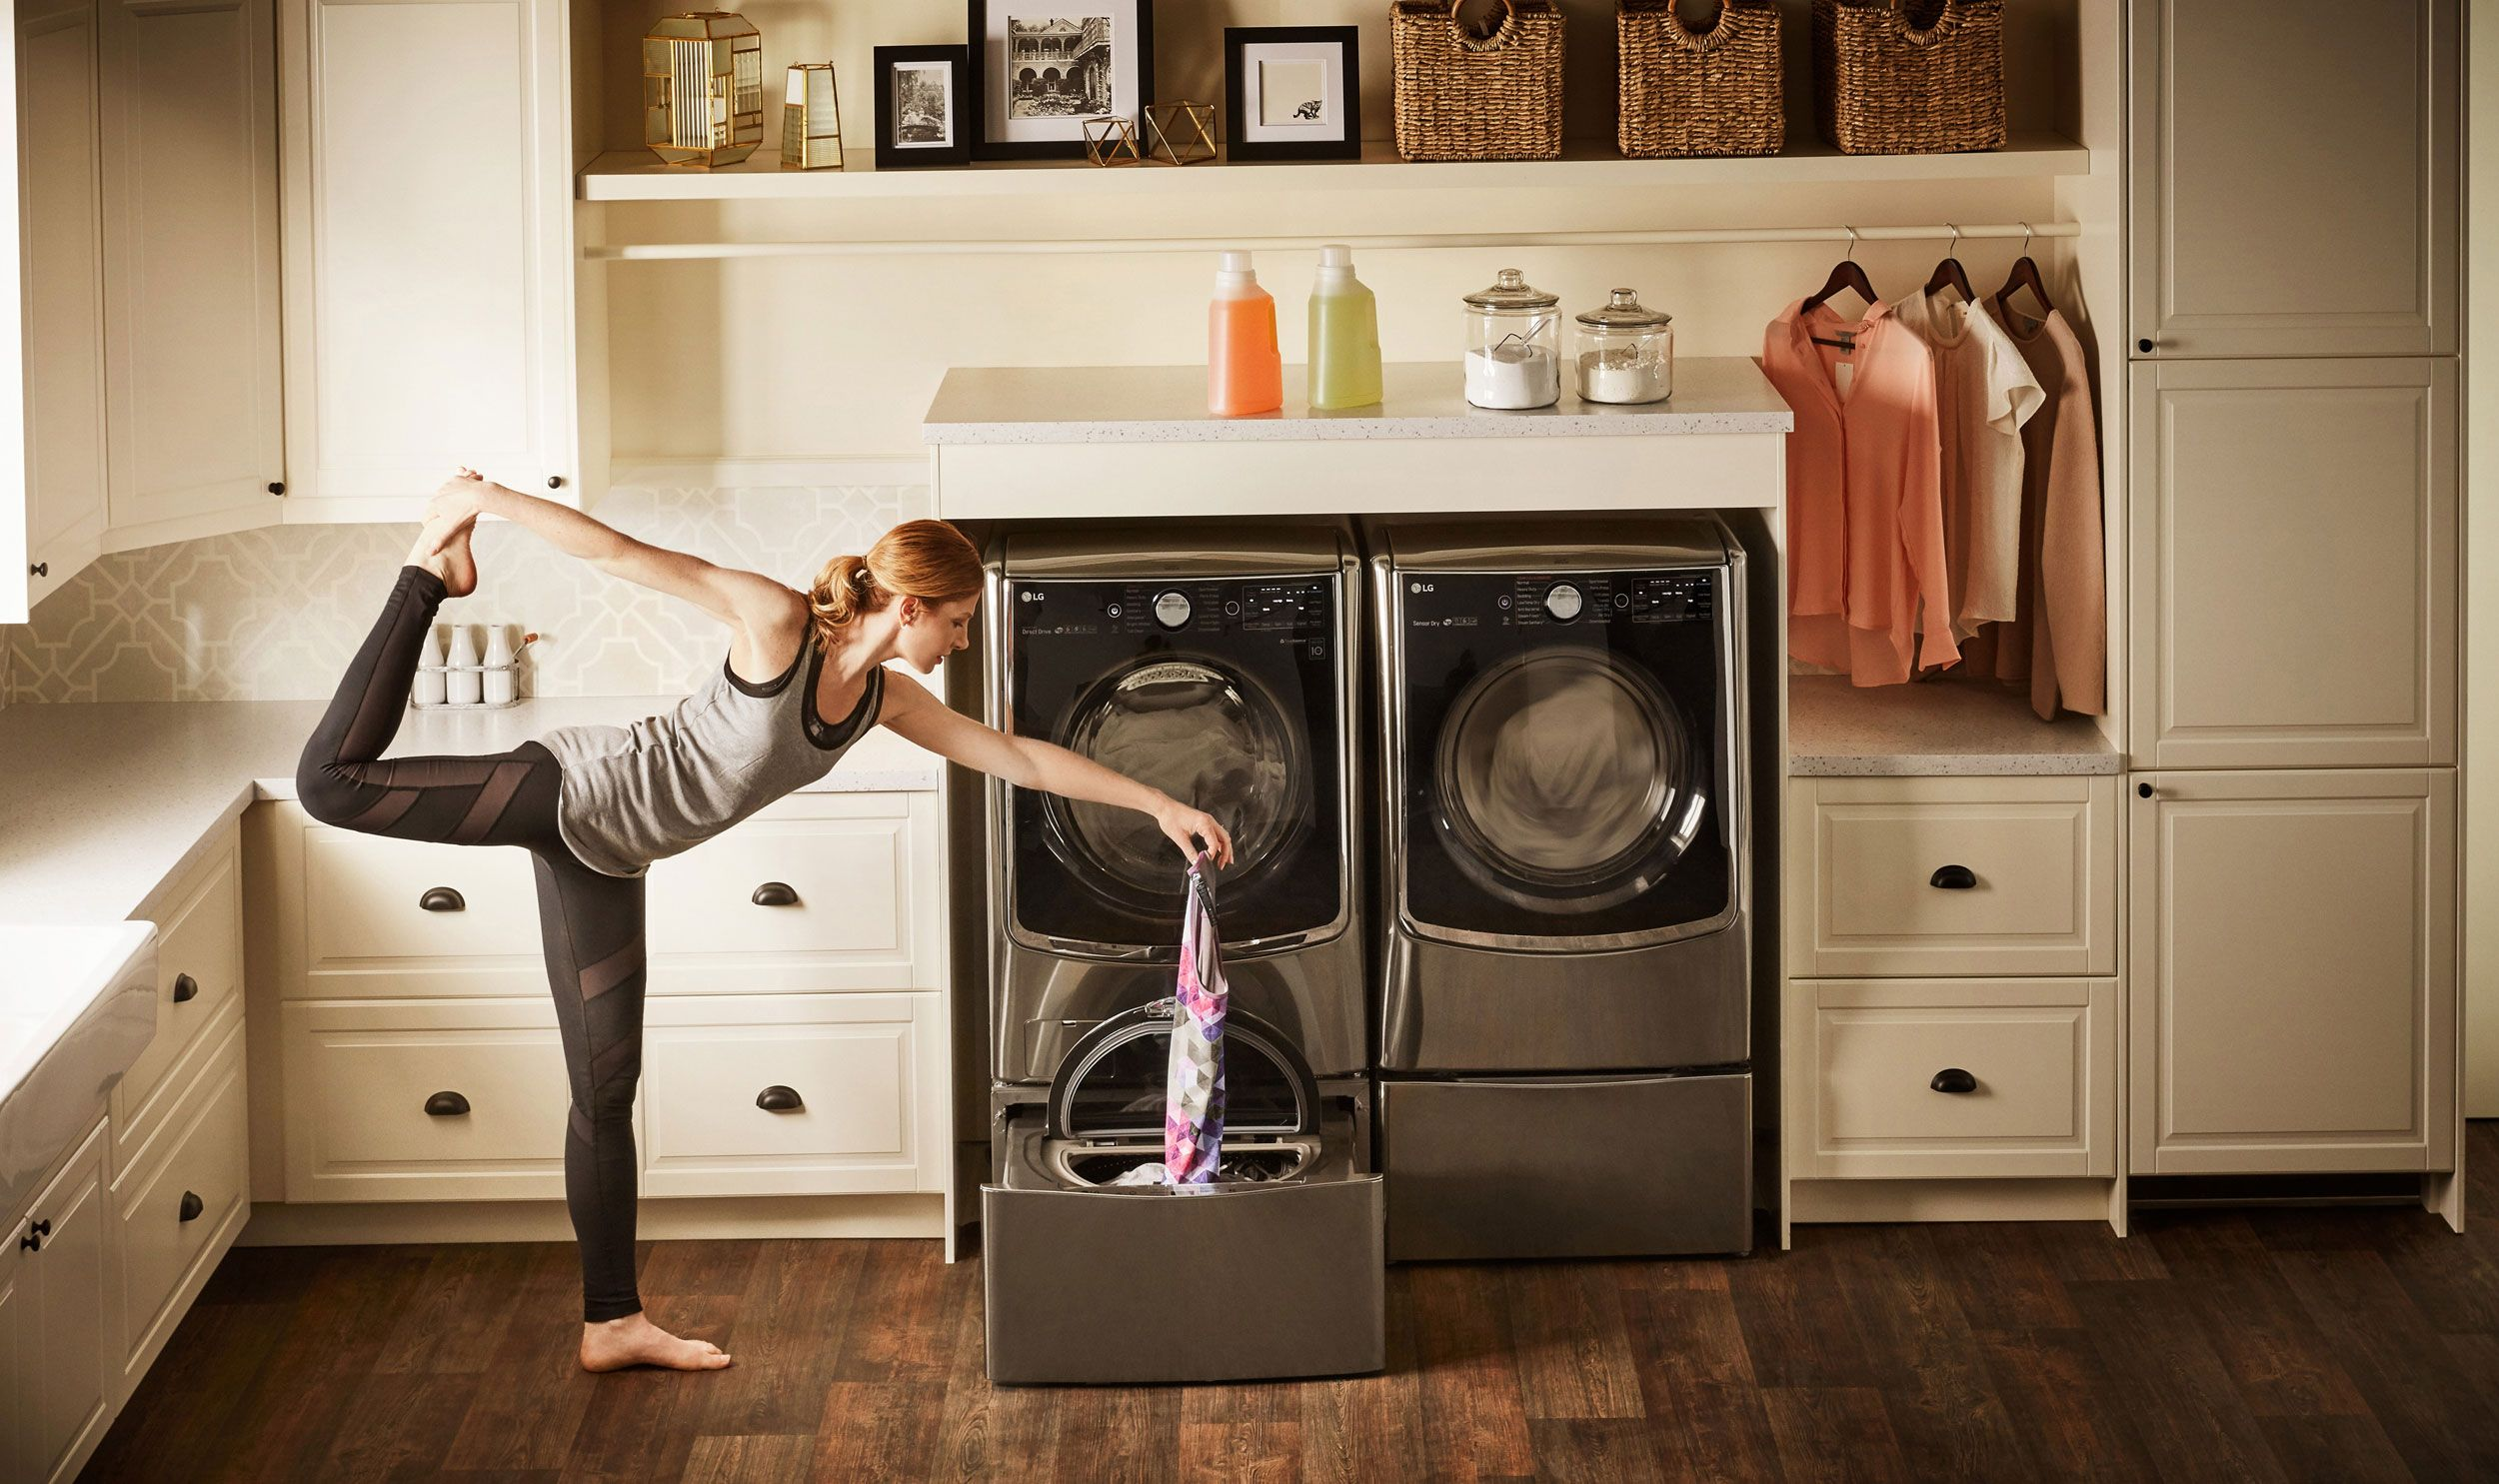 Add The Ingenious Lg Sidekick Pedestal Washer To Your Lg Twin Wash C With Images Small Laundry Room Organization Laundry Room Organization Laundry Room Storage